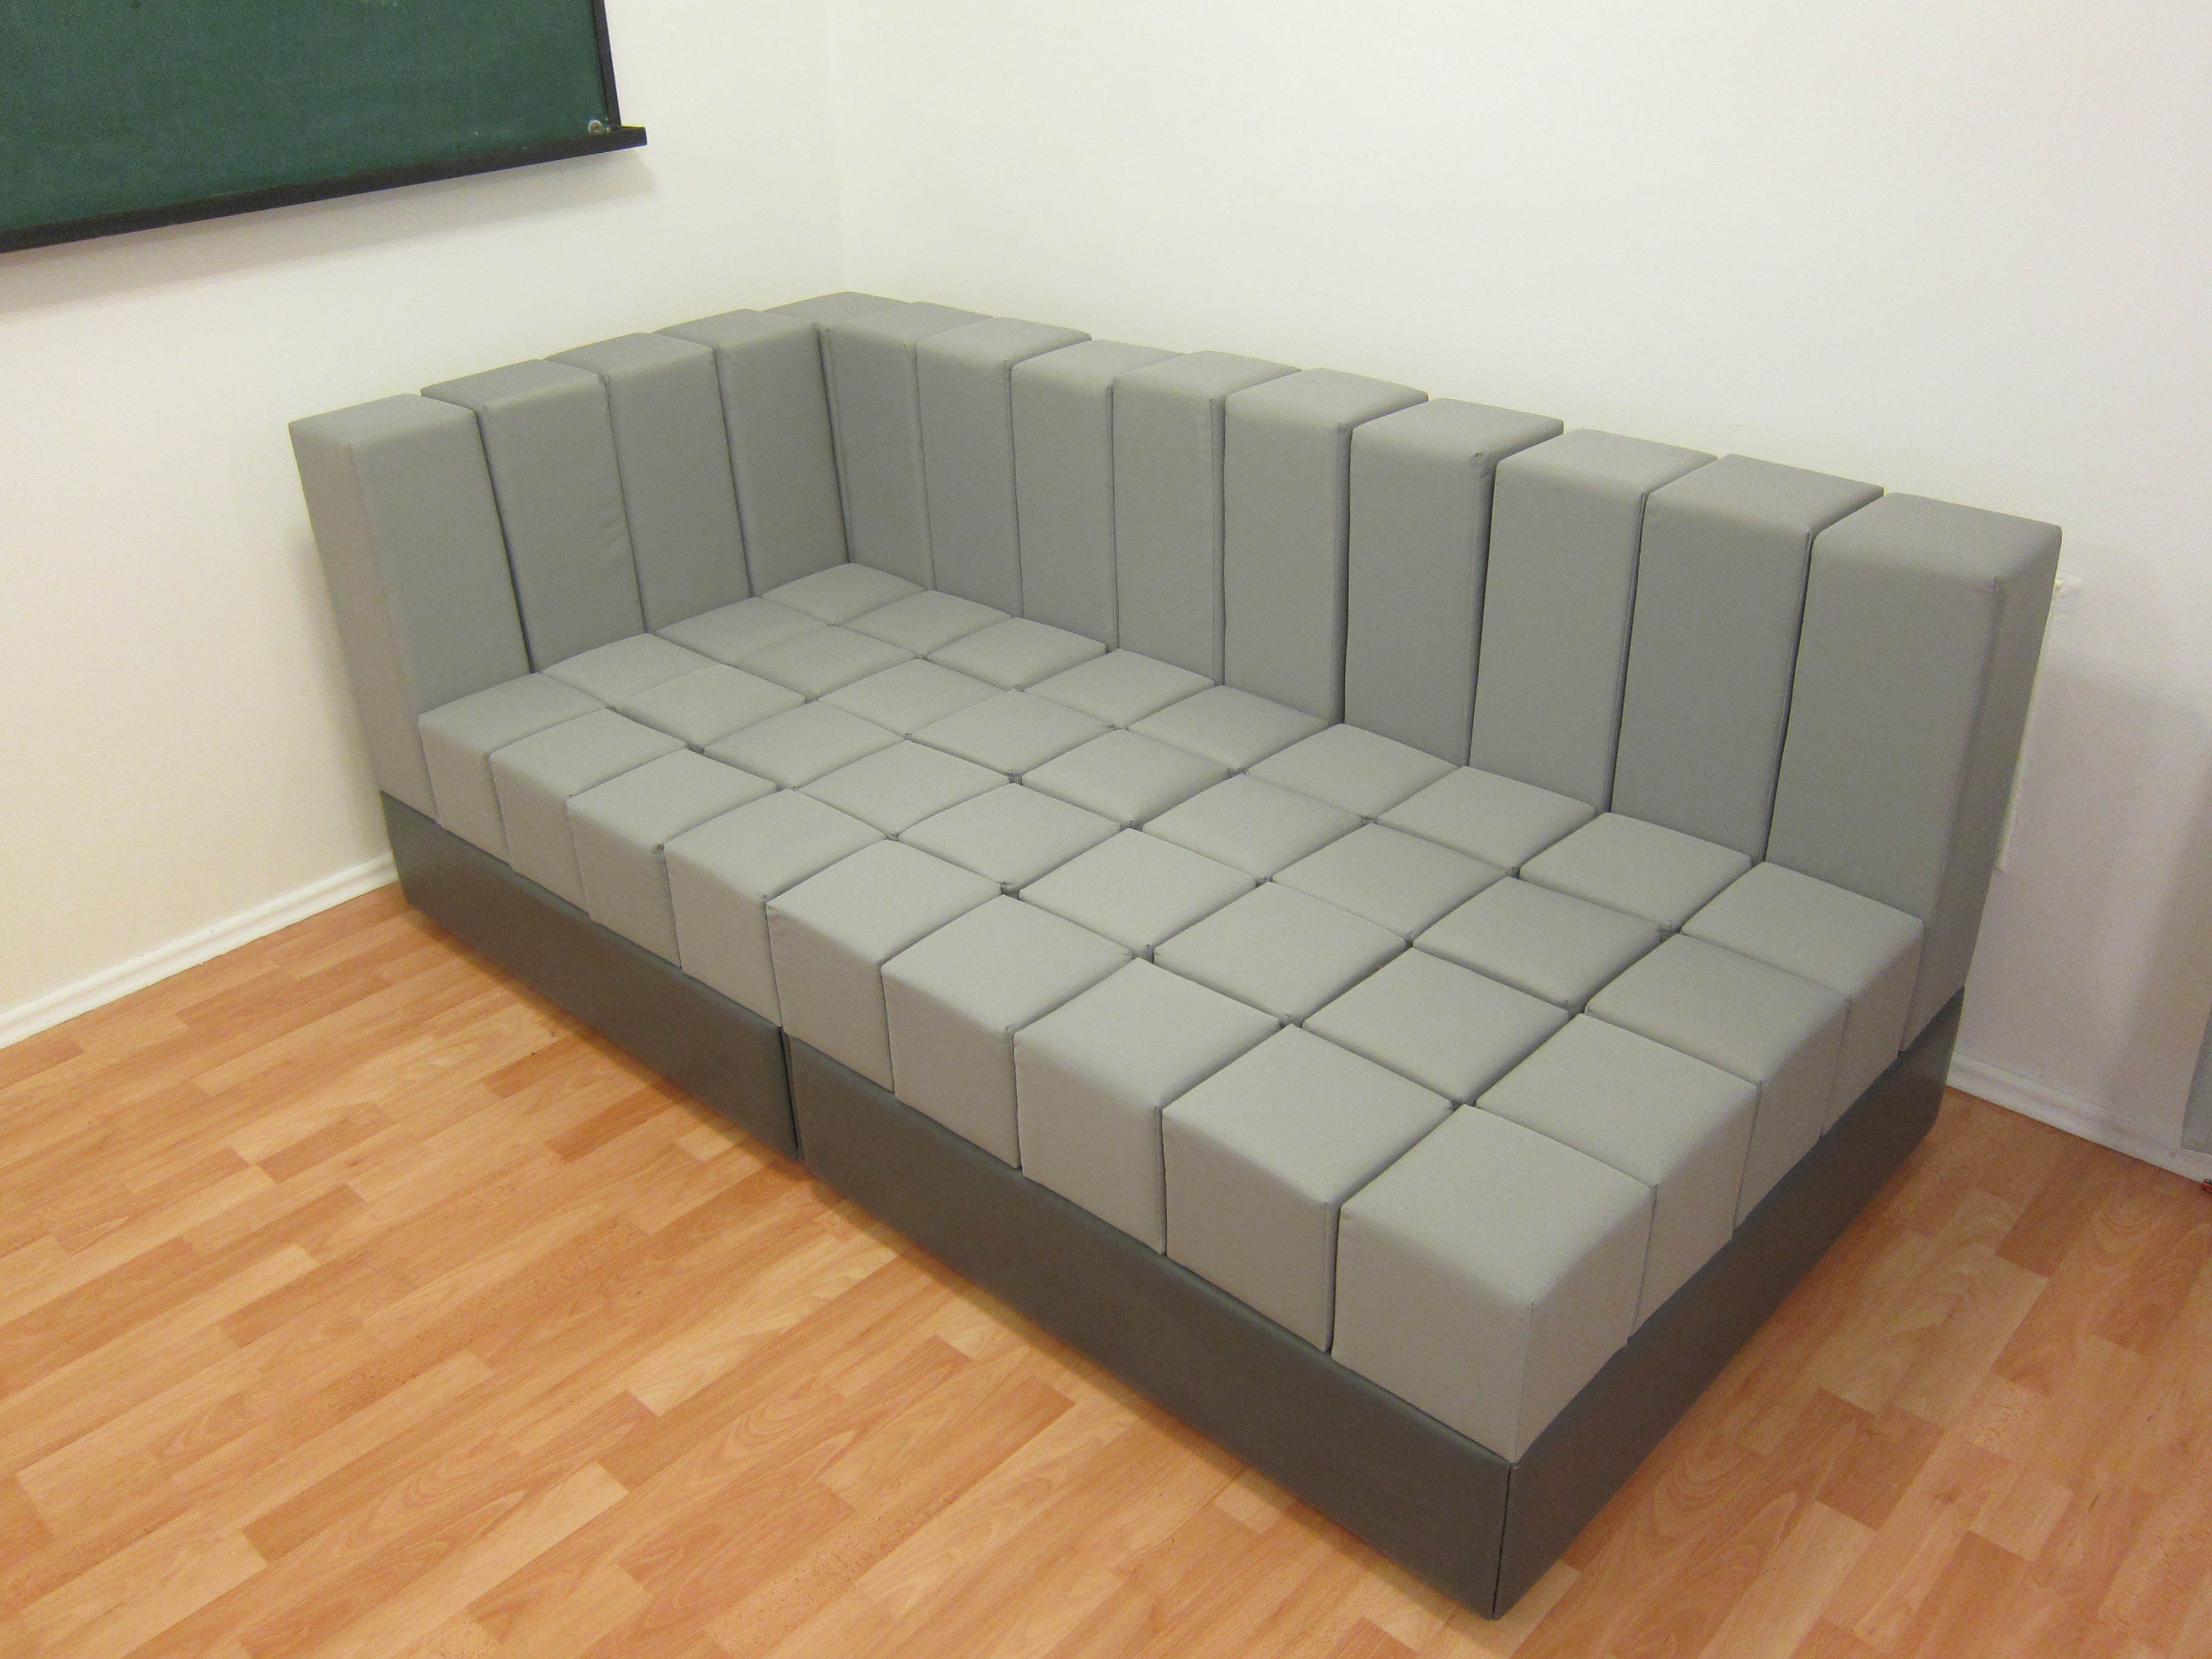 cube couch sofa selbstbau only some projects. Black Bedroom Furniture Sets. Home Design Ideas